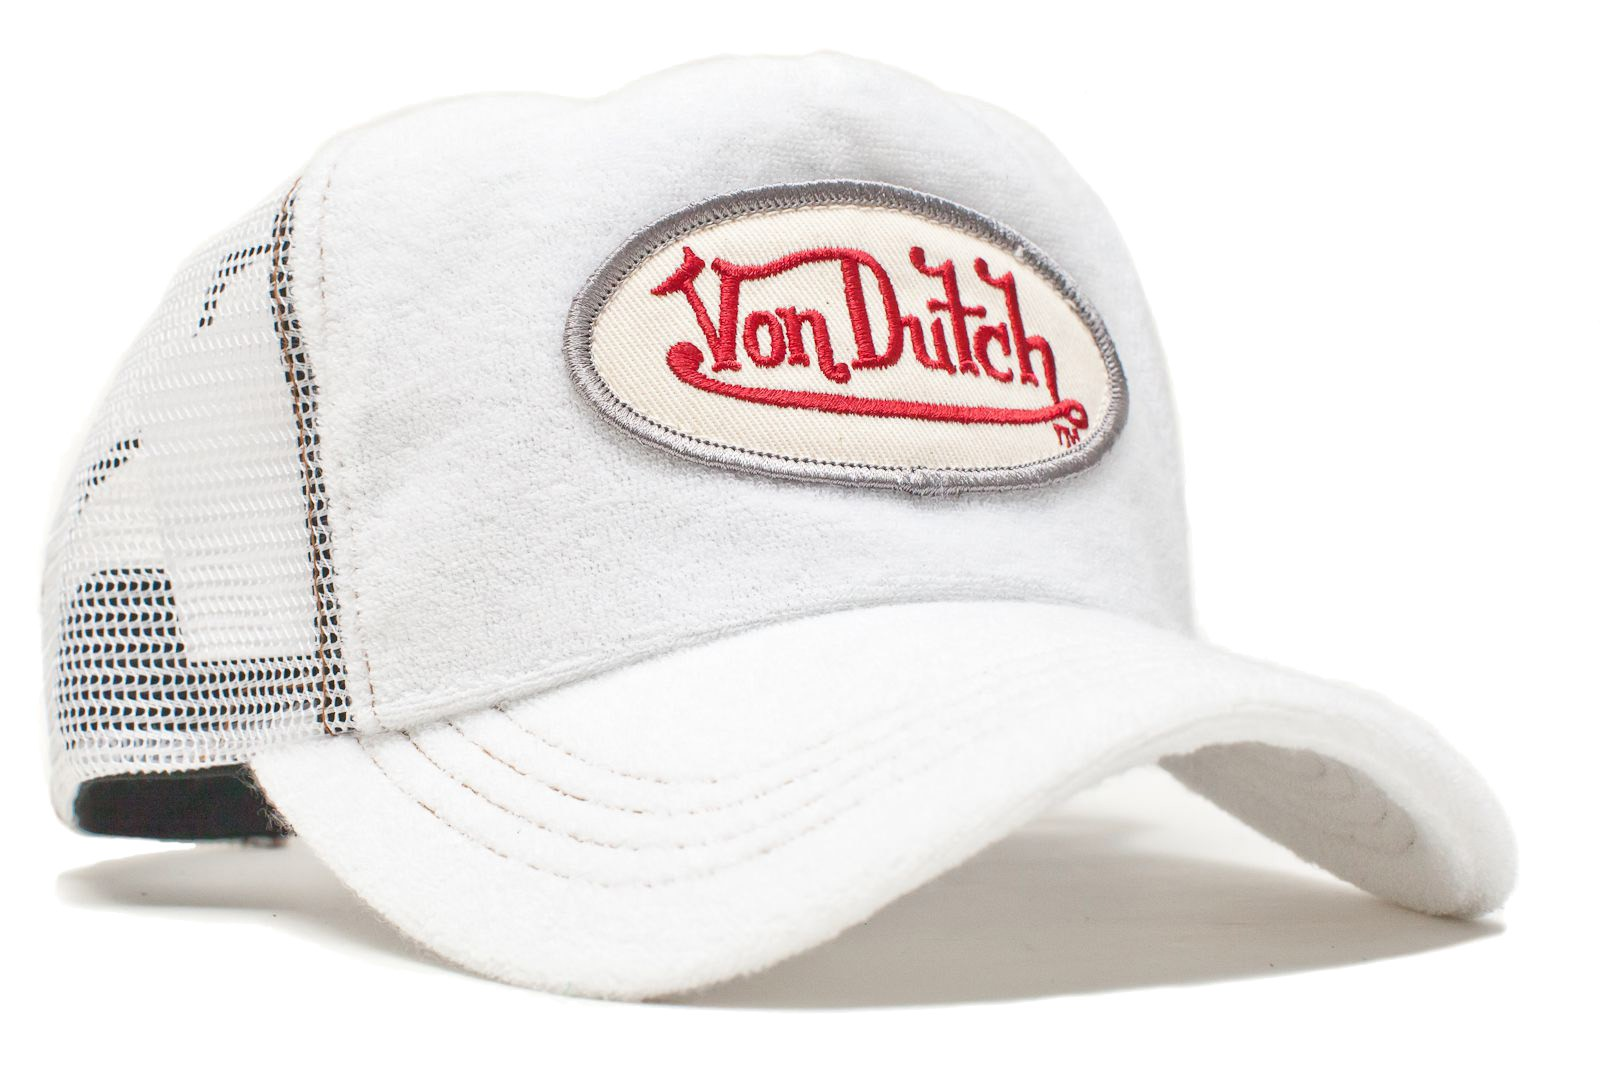 Von Dutch - Terry Cloth Mesh Trucker Cap